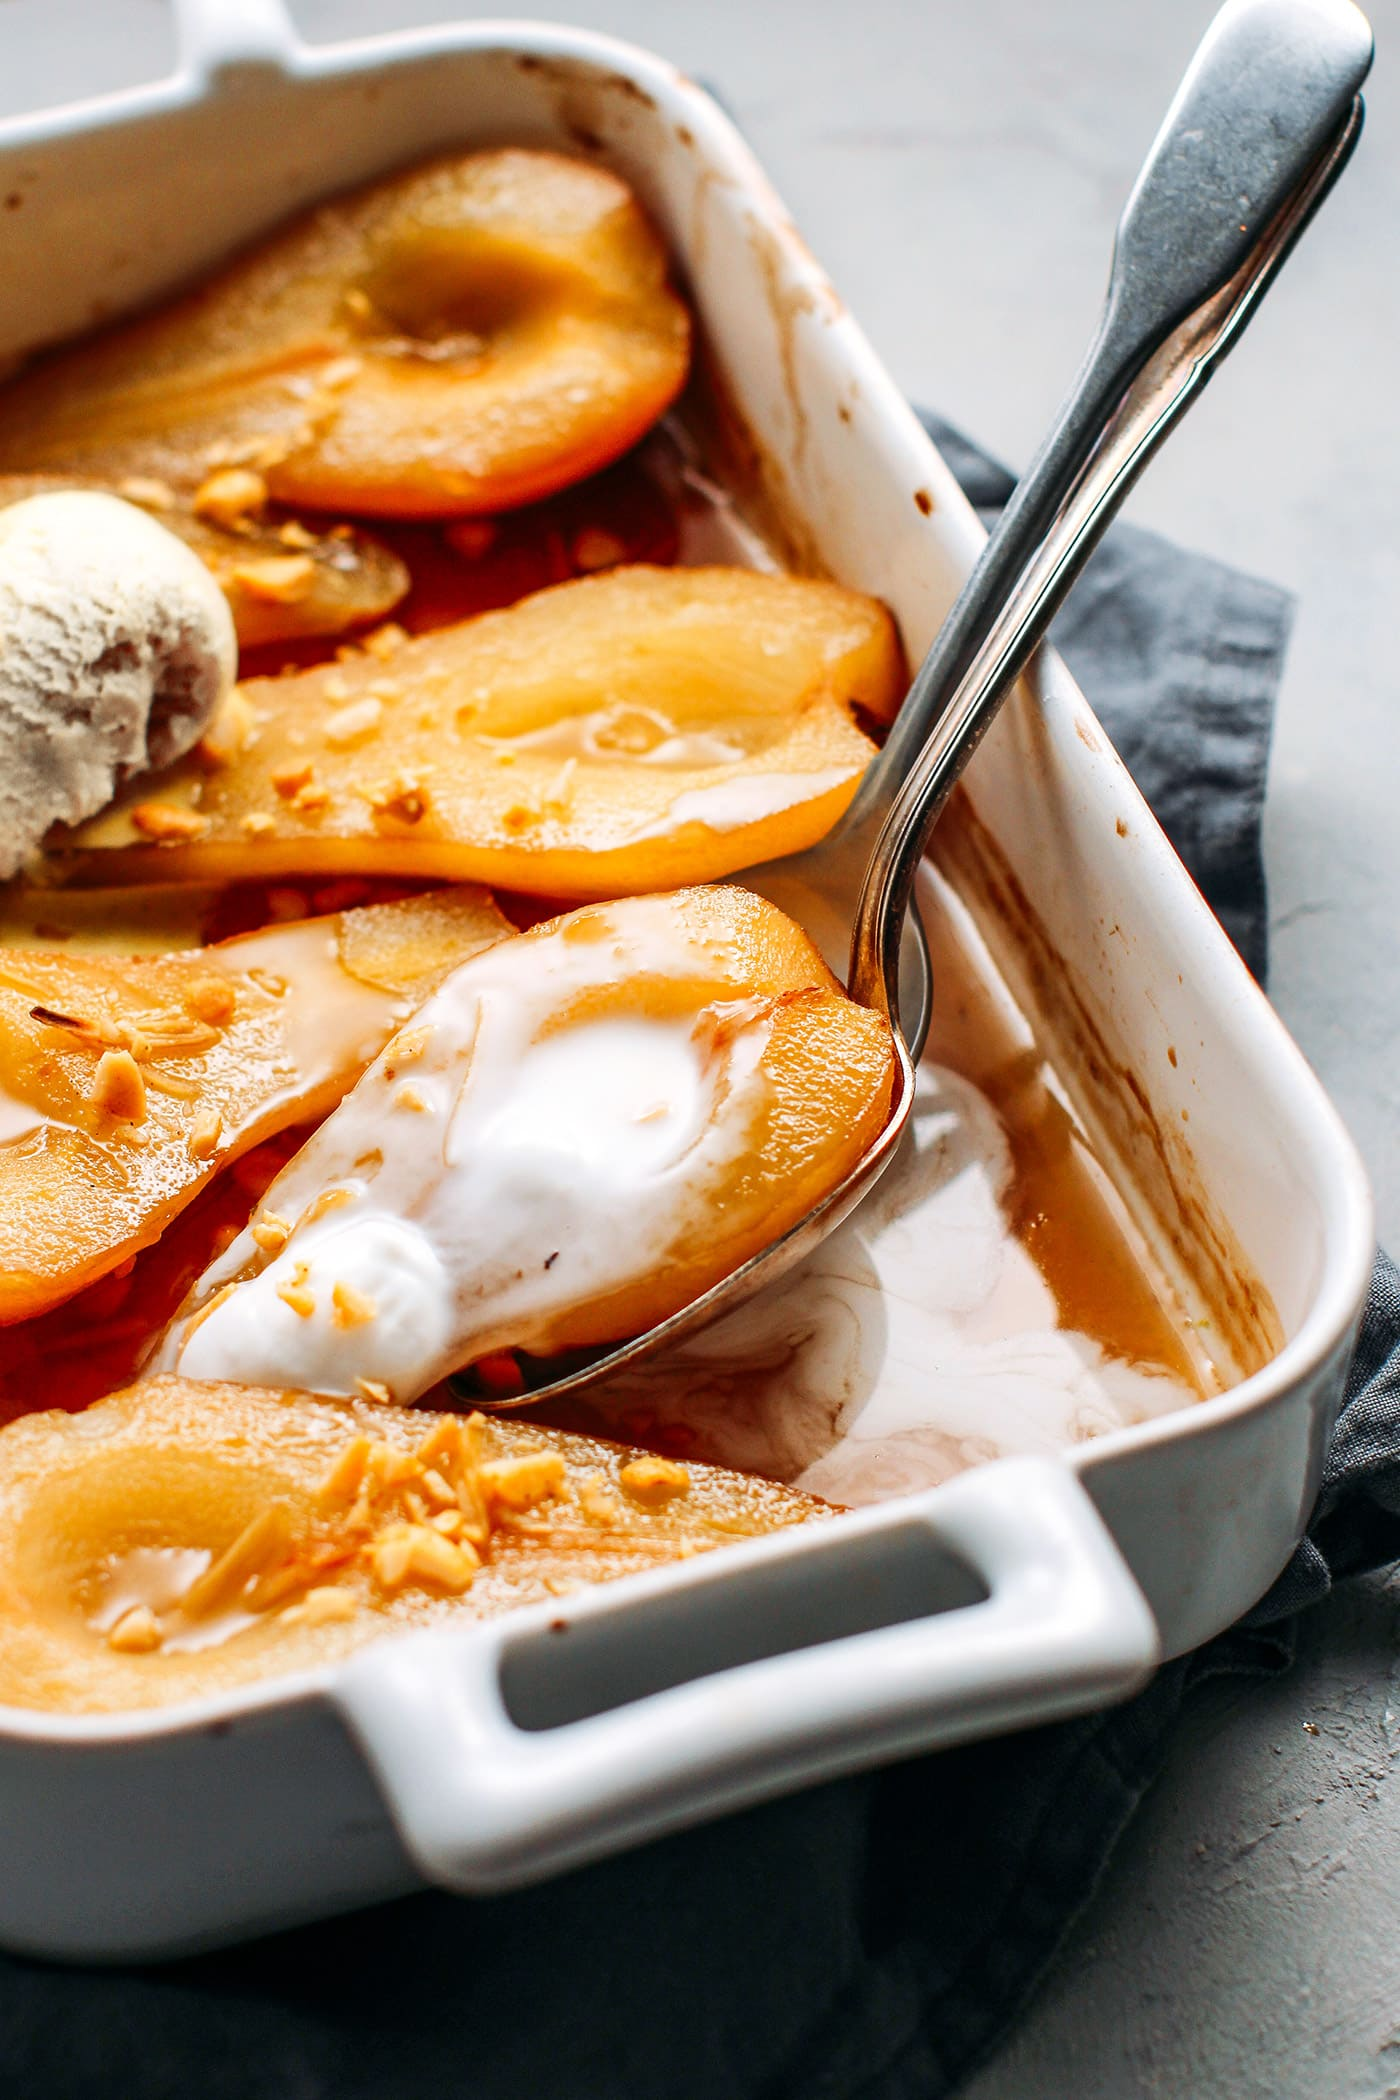 Roasted Pears in Ginger Syrup